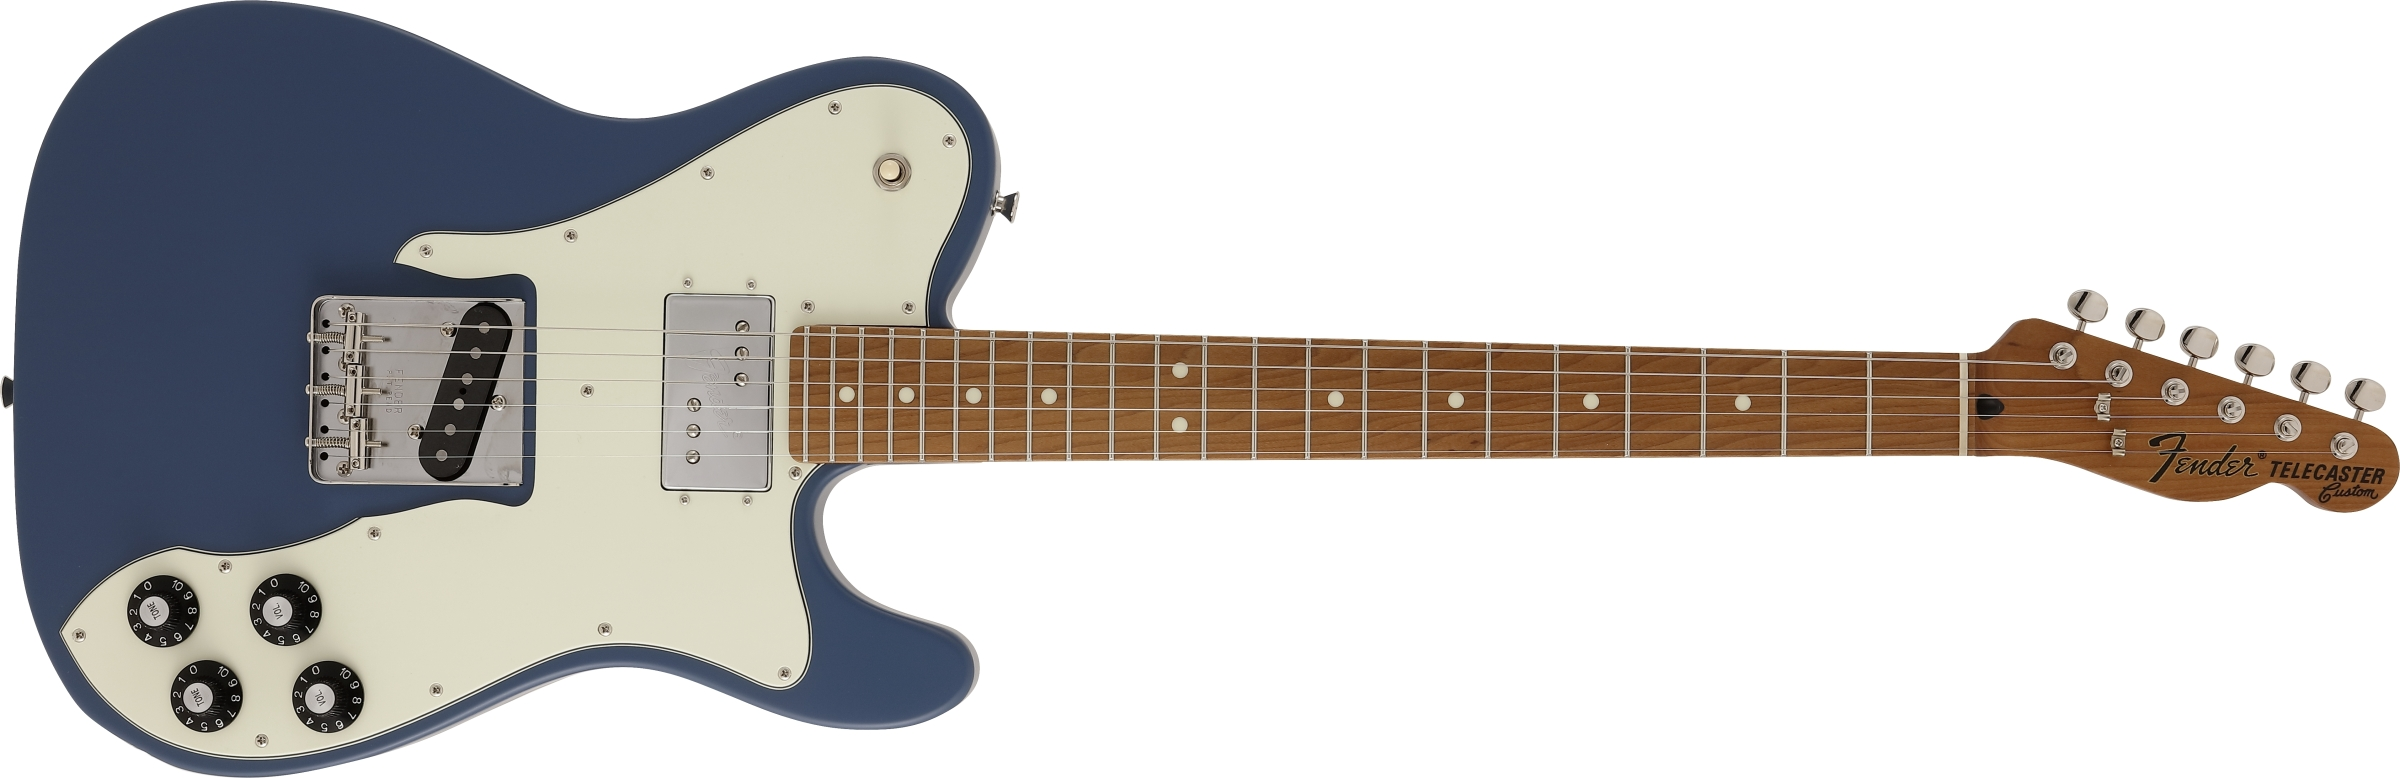 A Japan-only Fender Telecaster with a roasted maple neck